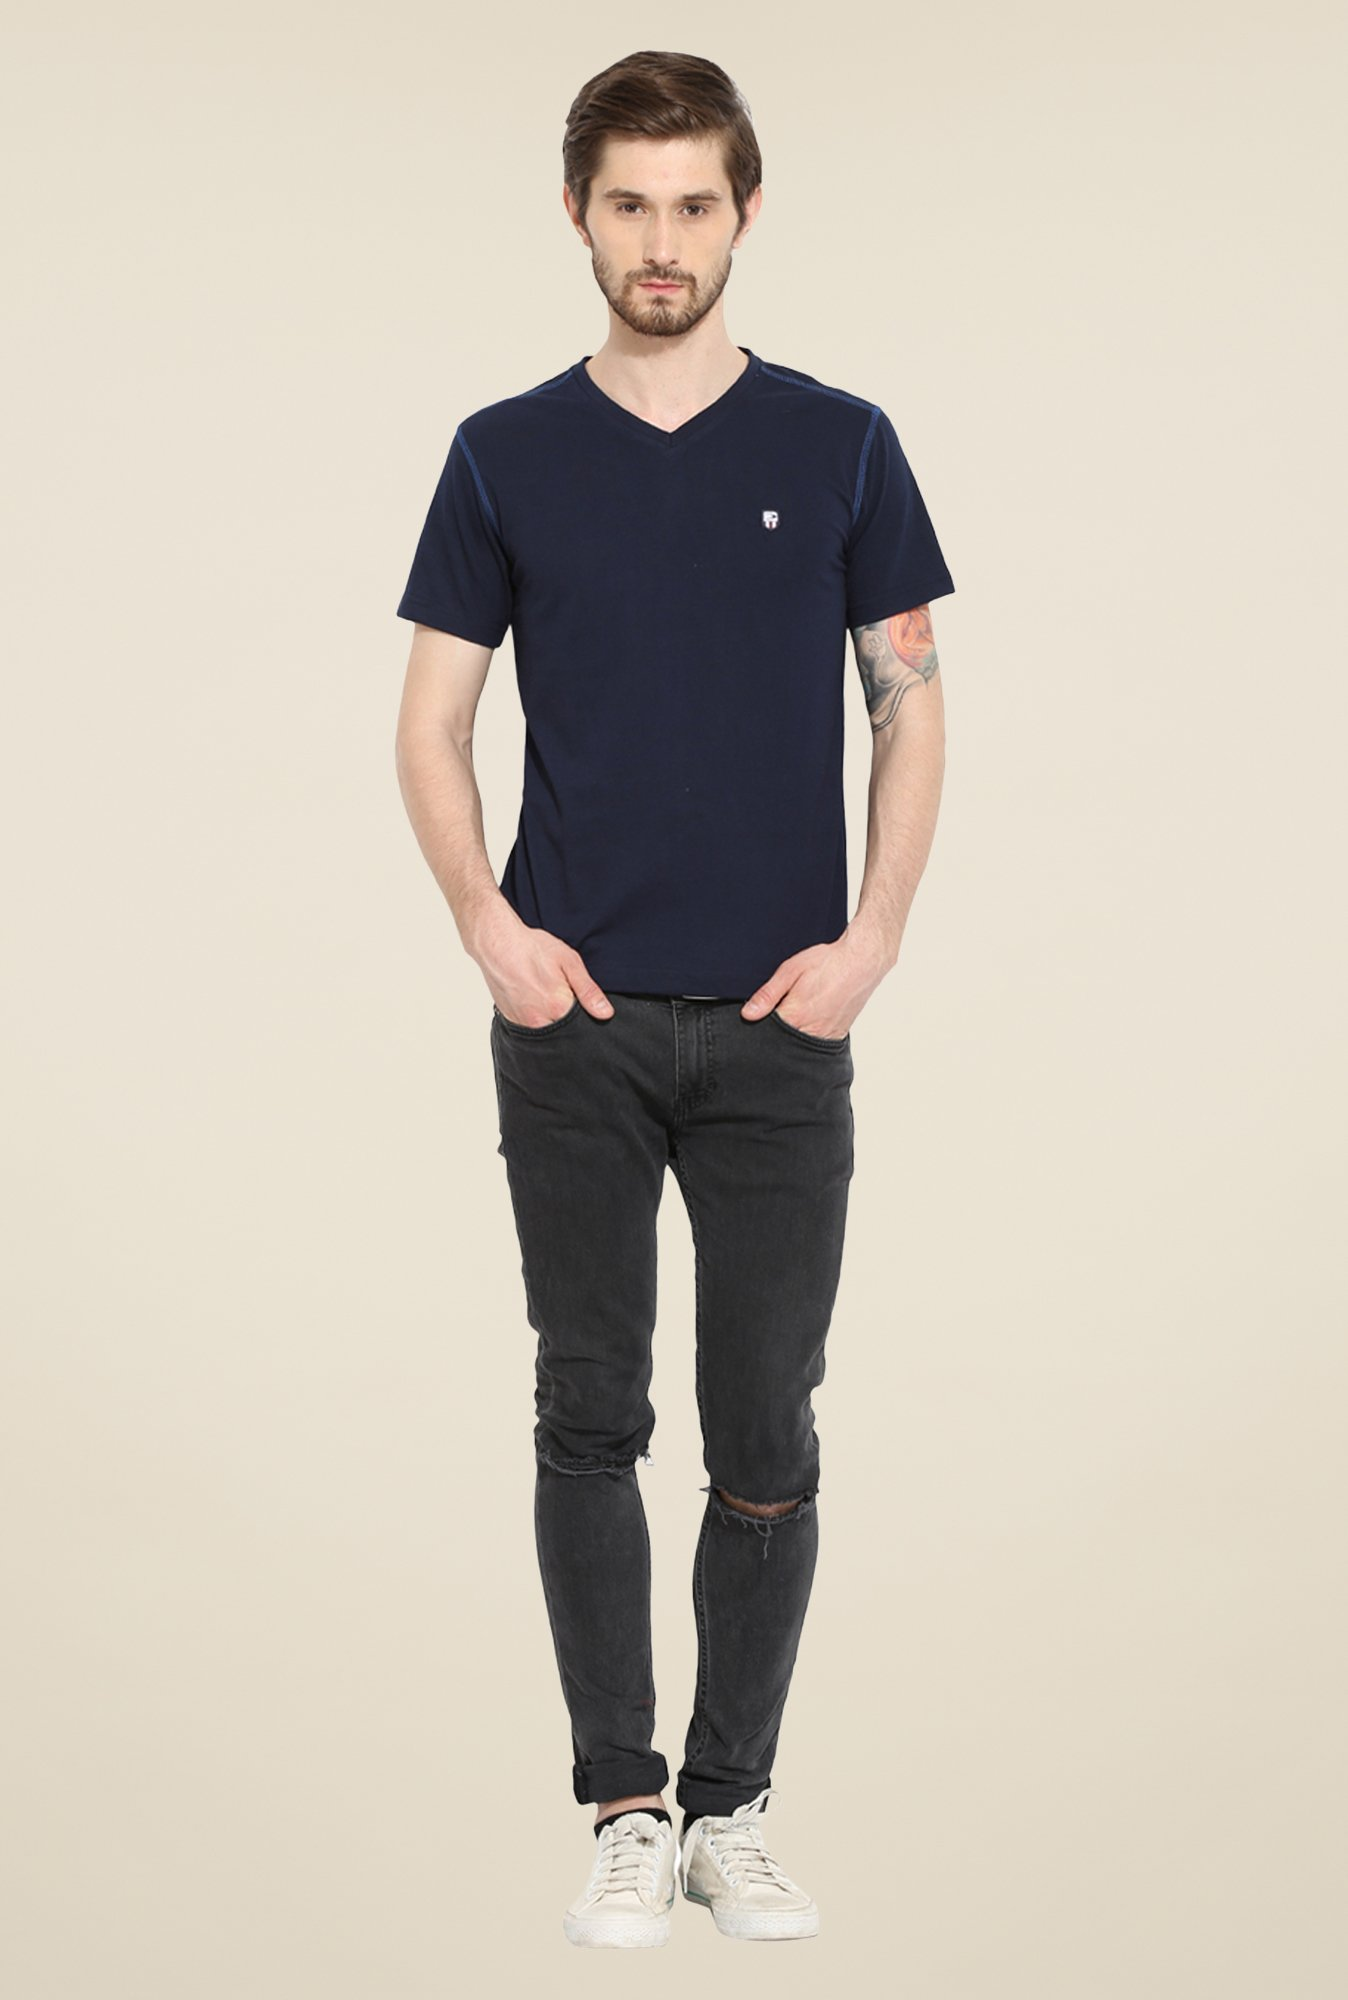 Duke Stardust Navy Solid T Shirt